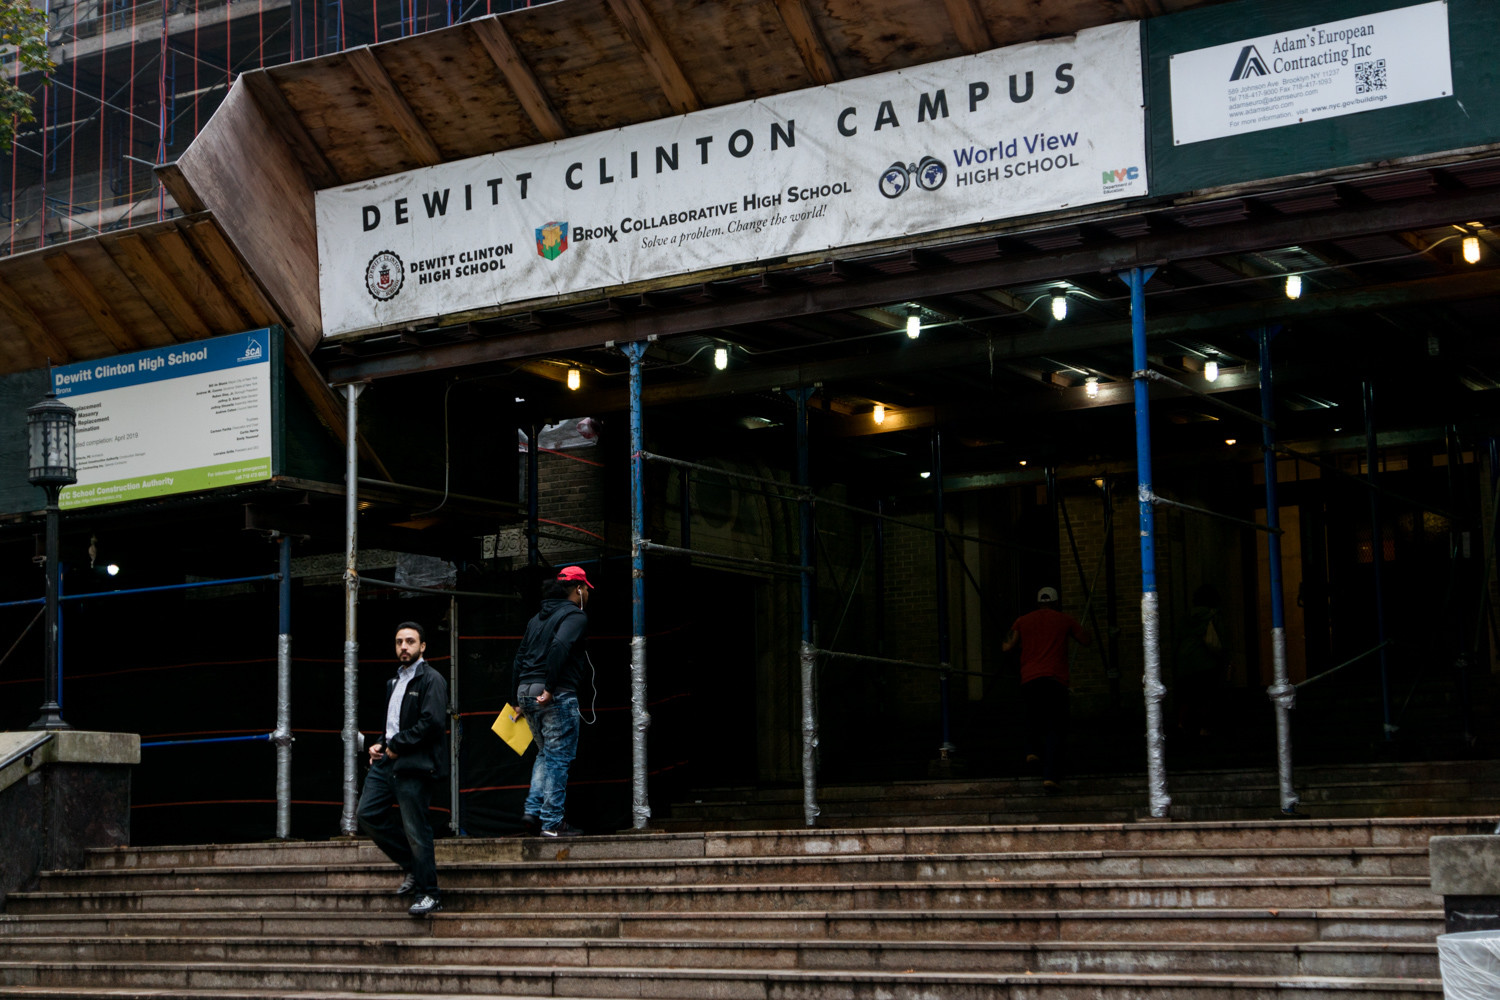 The state's education department recently announced DeWitt Clinton High School would remain under the control of the city's education department saying the school made improvements as it worked to reverse its low four-year graduation rate.